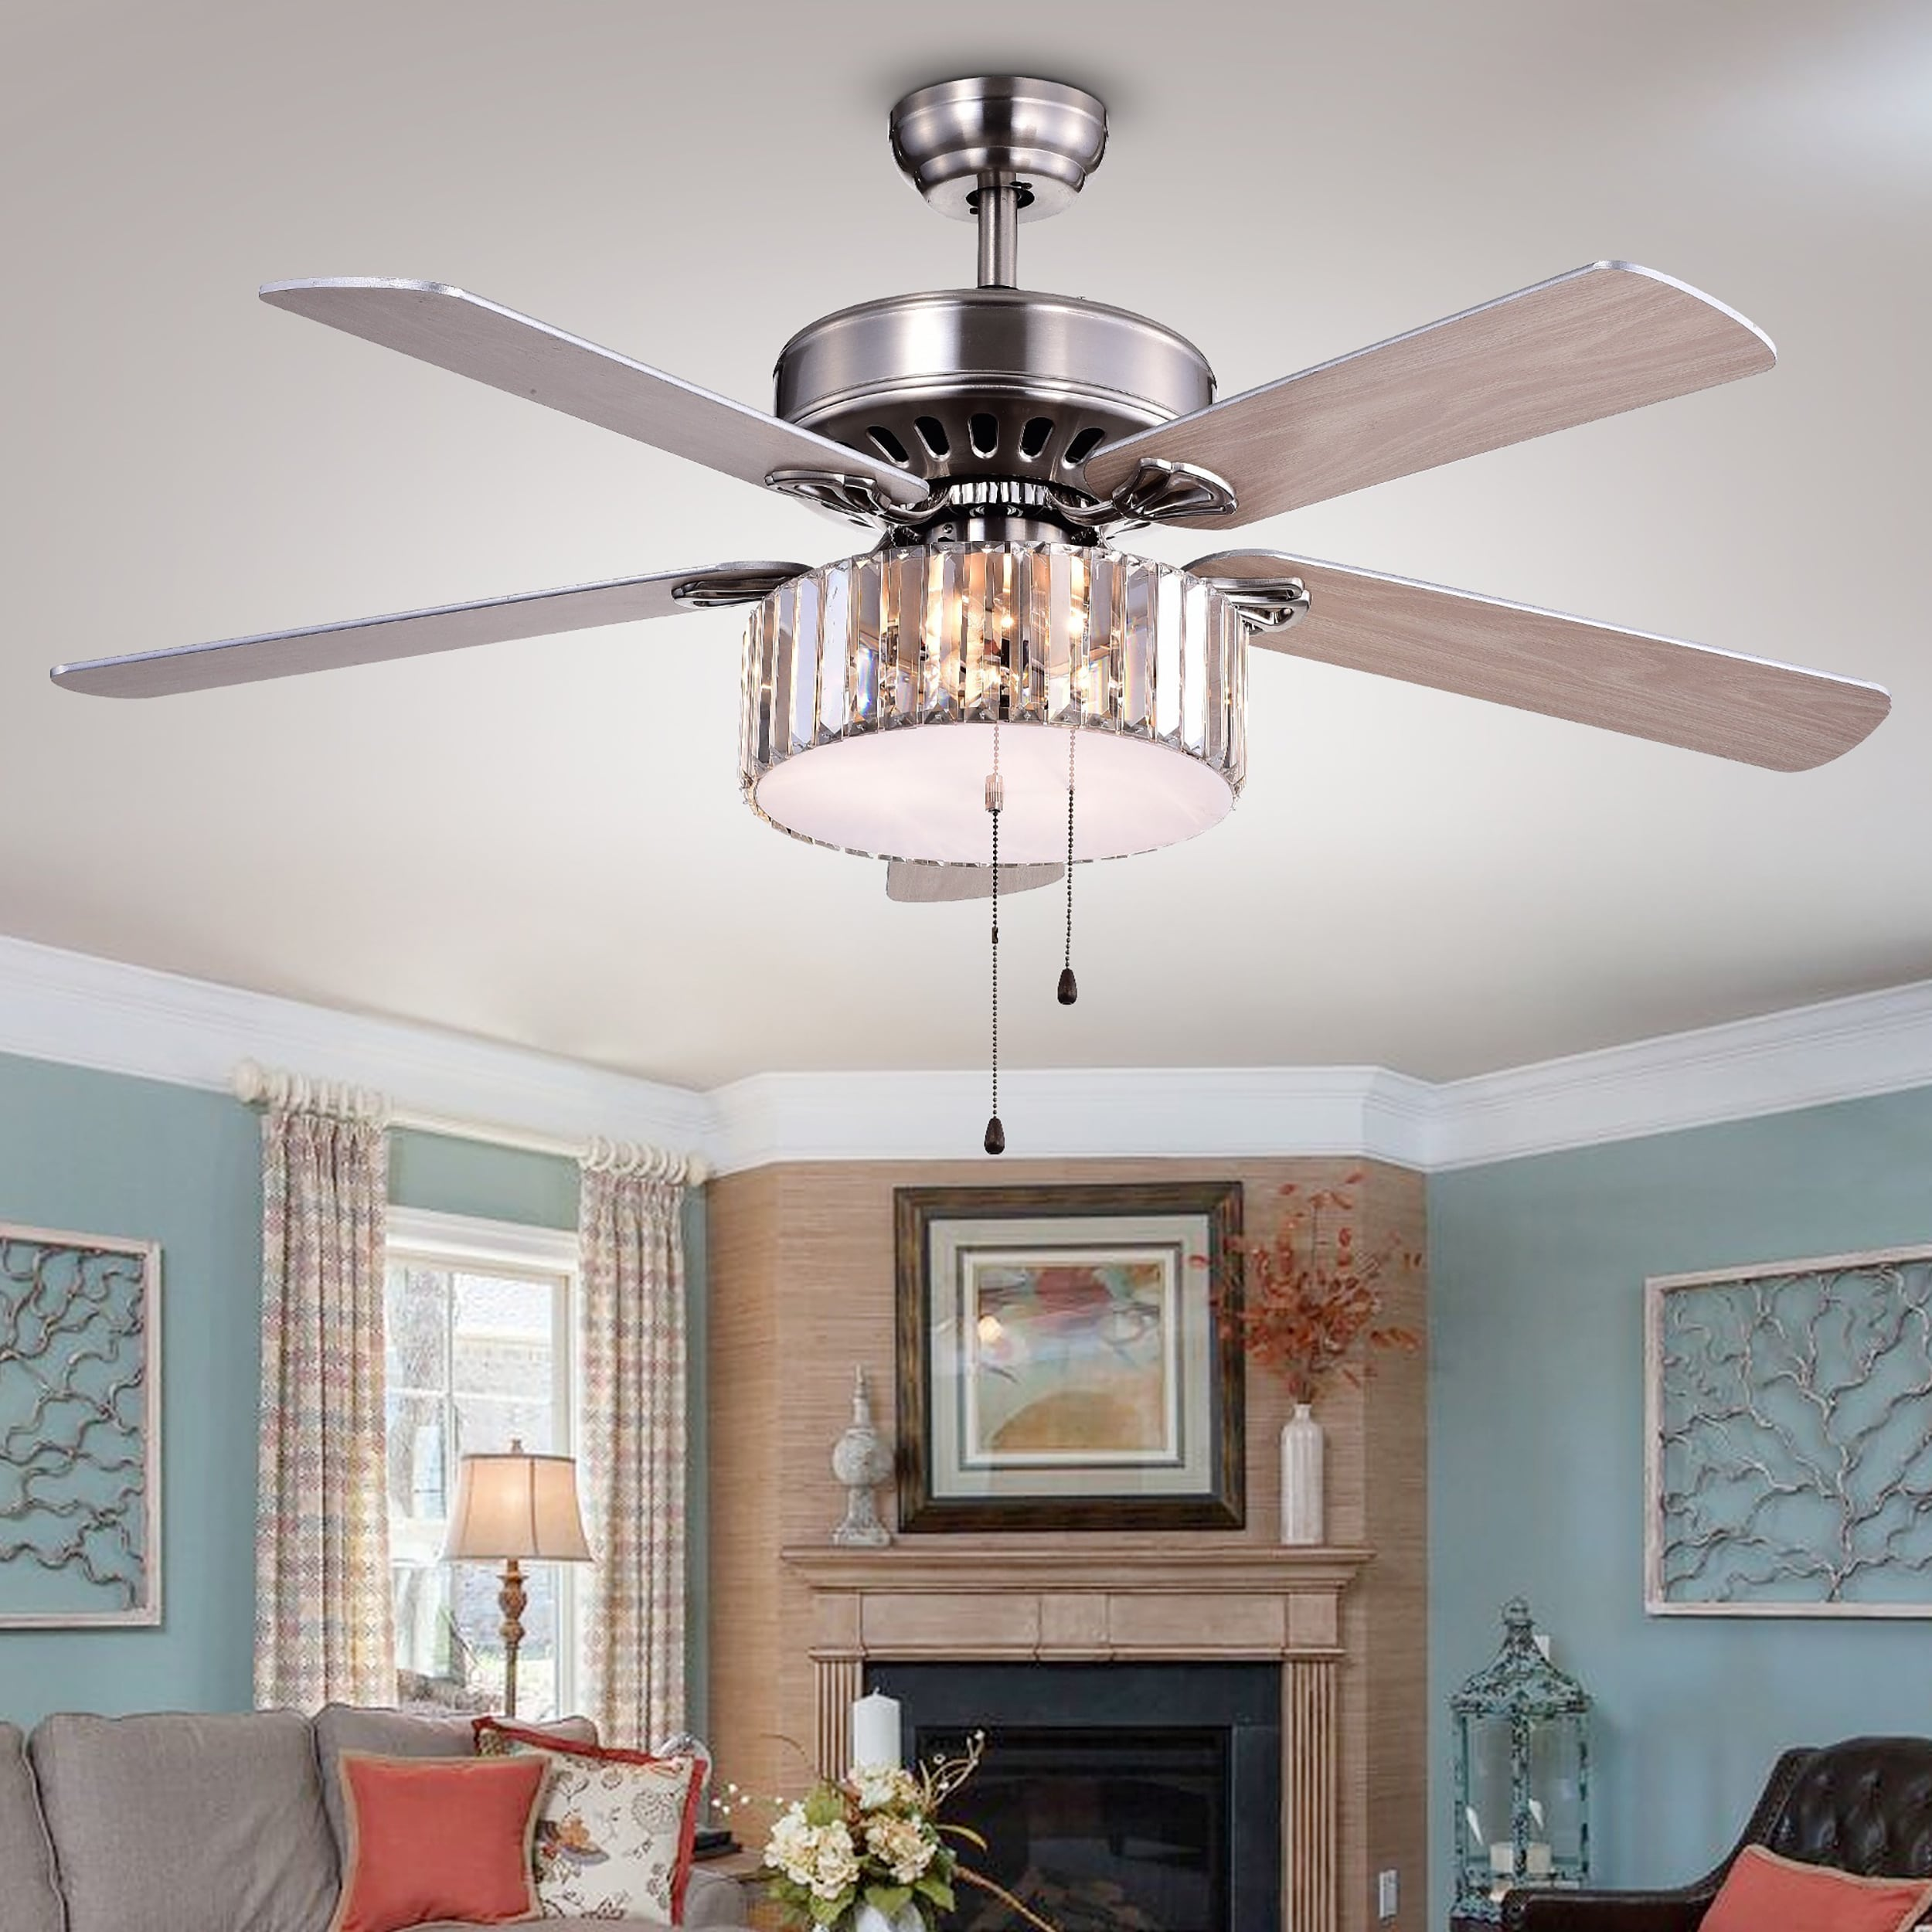 42 inch LED Chandelier Chrome Ceiling Fan with Cool 4000K Light